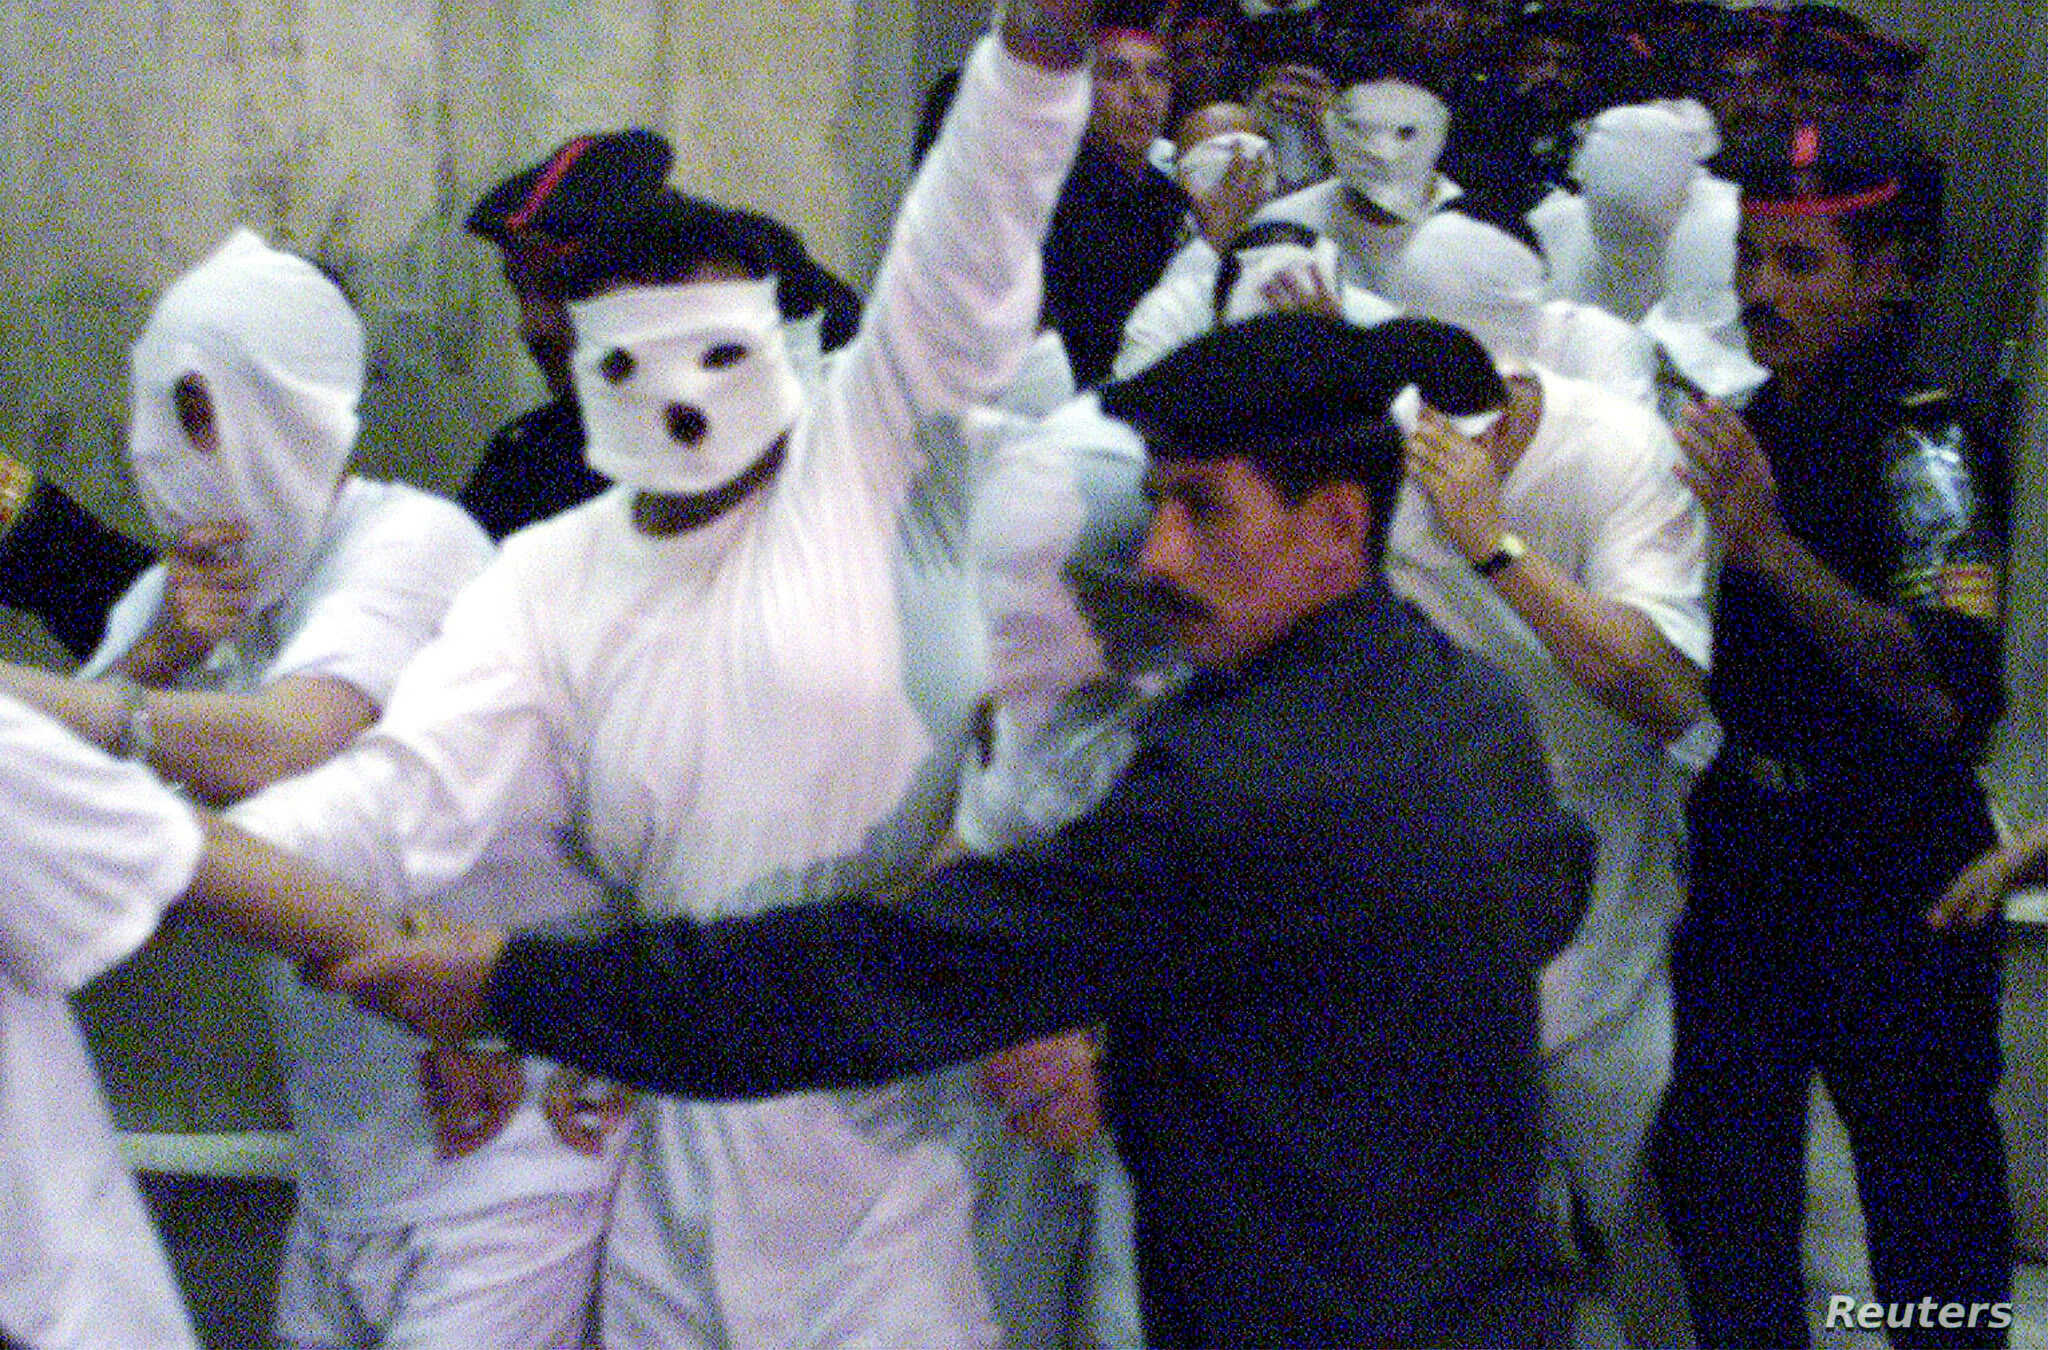 (File Photo) Egyptian security flank 52 suspected homosexual men accused of sexual immorality as they arrive at a Cairo court November 14, 2001.